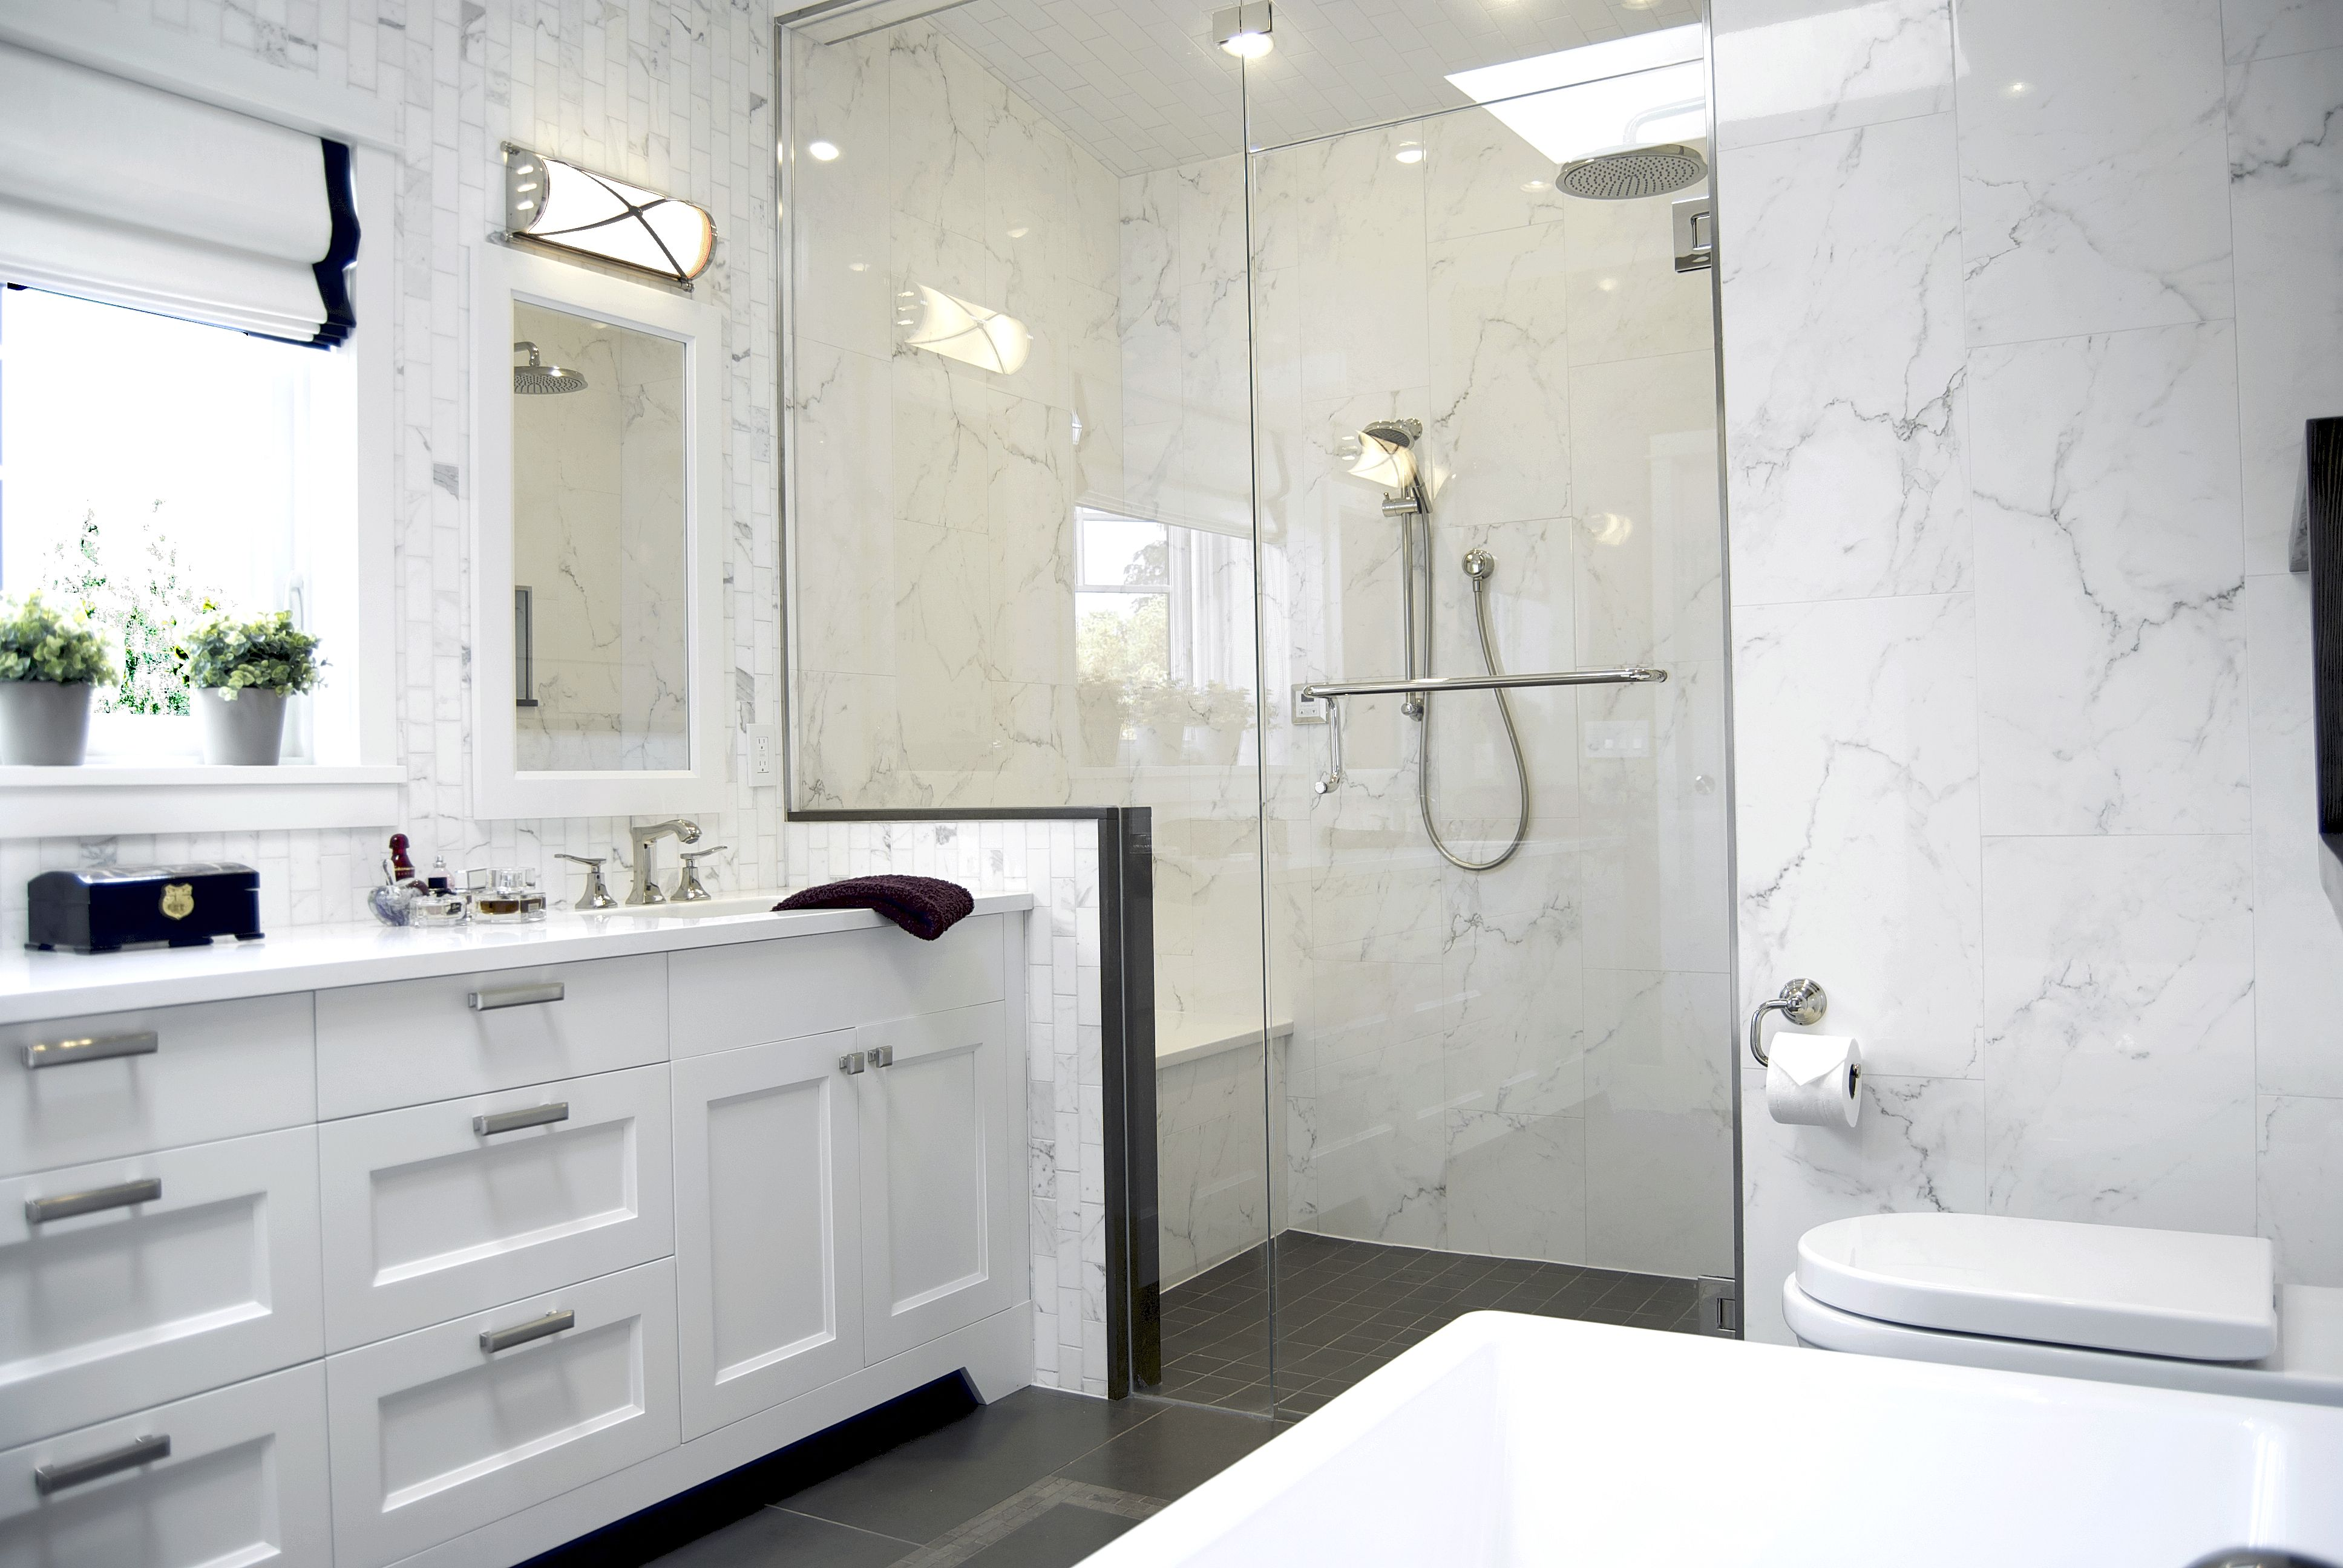 Reveling in Luxury 2014 NKBA Design Competition Finalist | Bathrooms ...